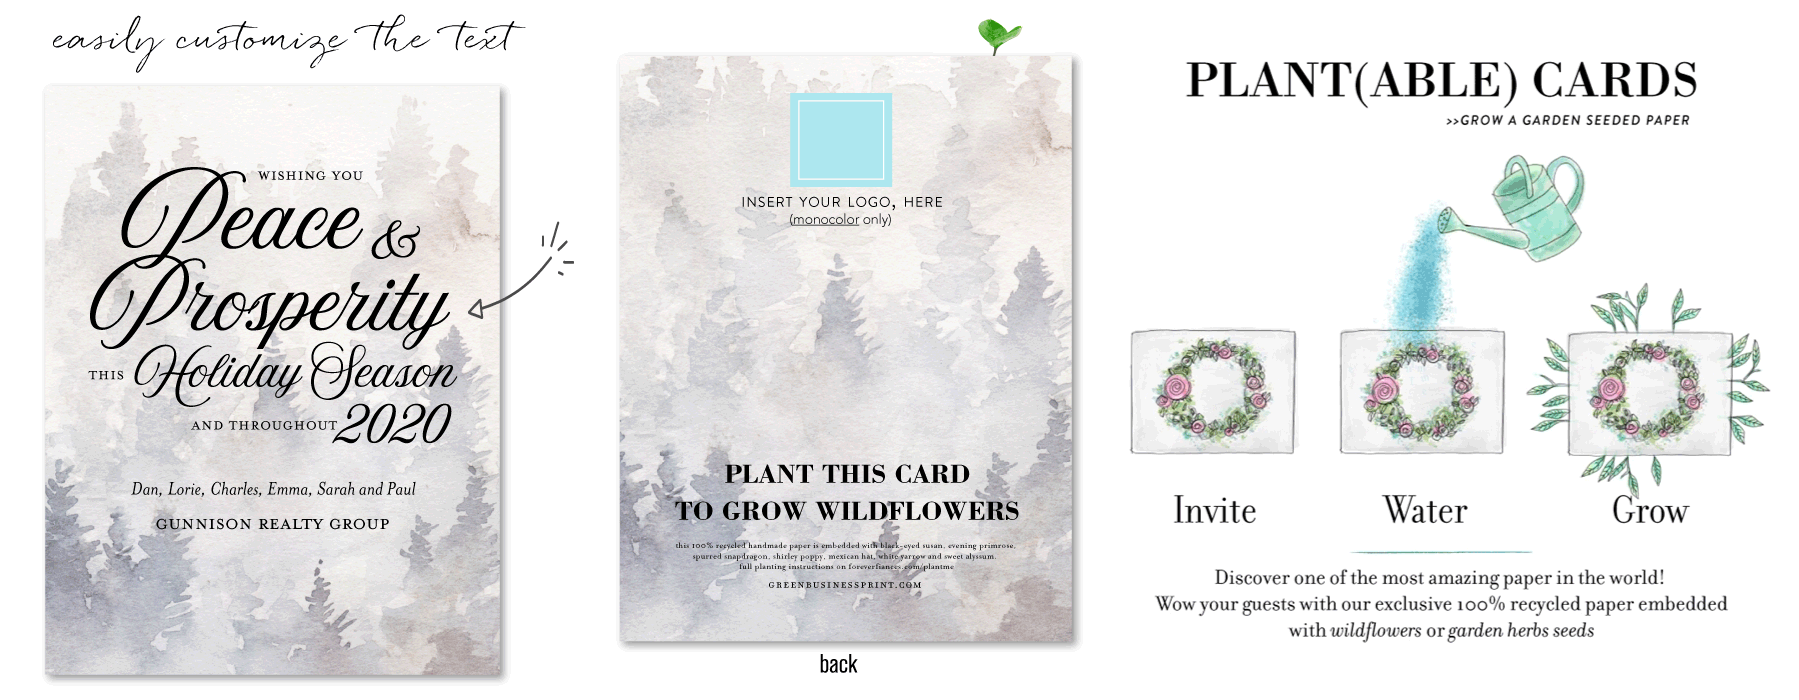 enchanted forest business holiday cards